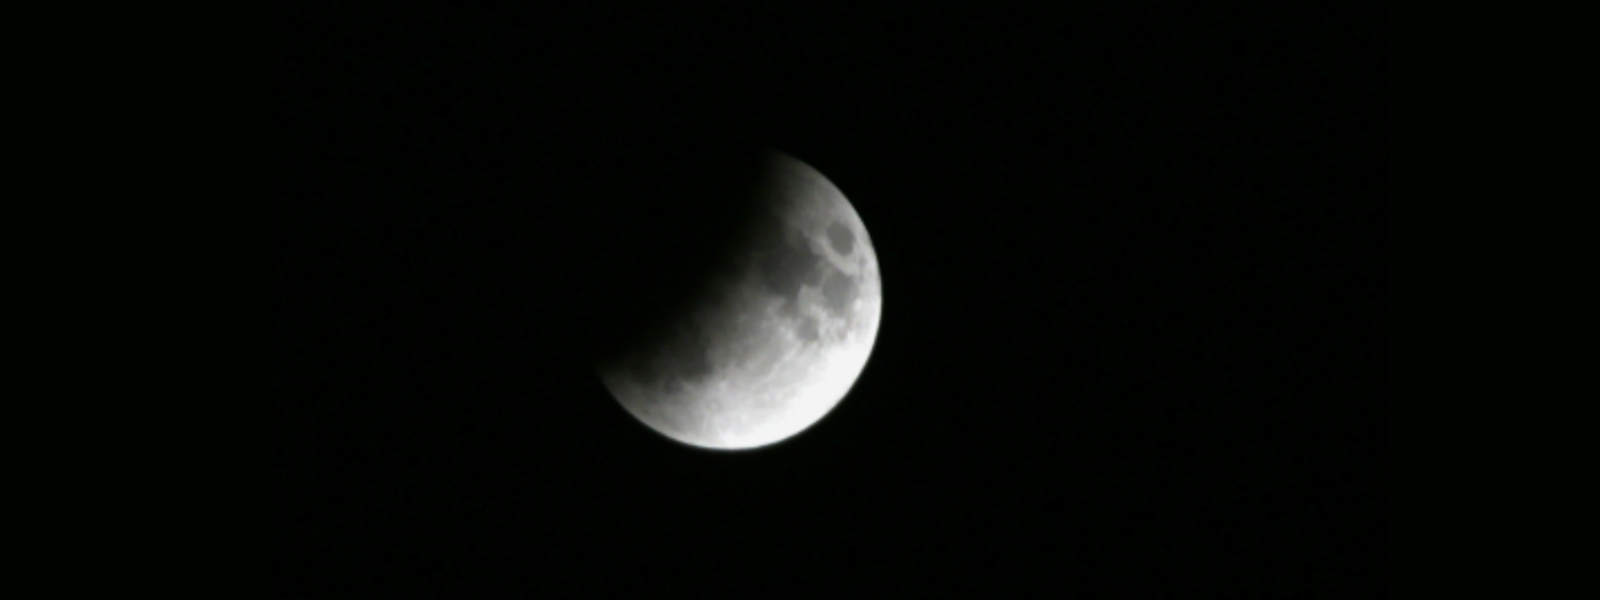 First lunar eclipse of 2020 to occur tomorrow